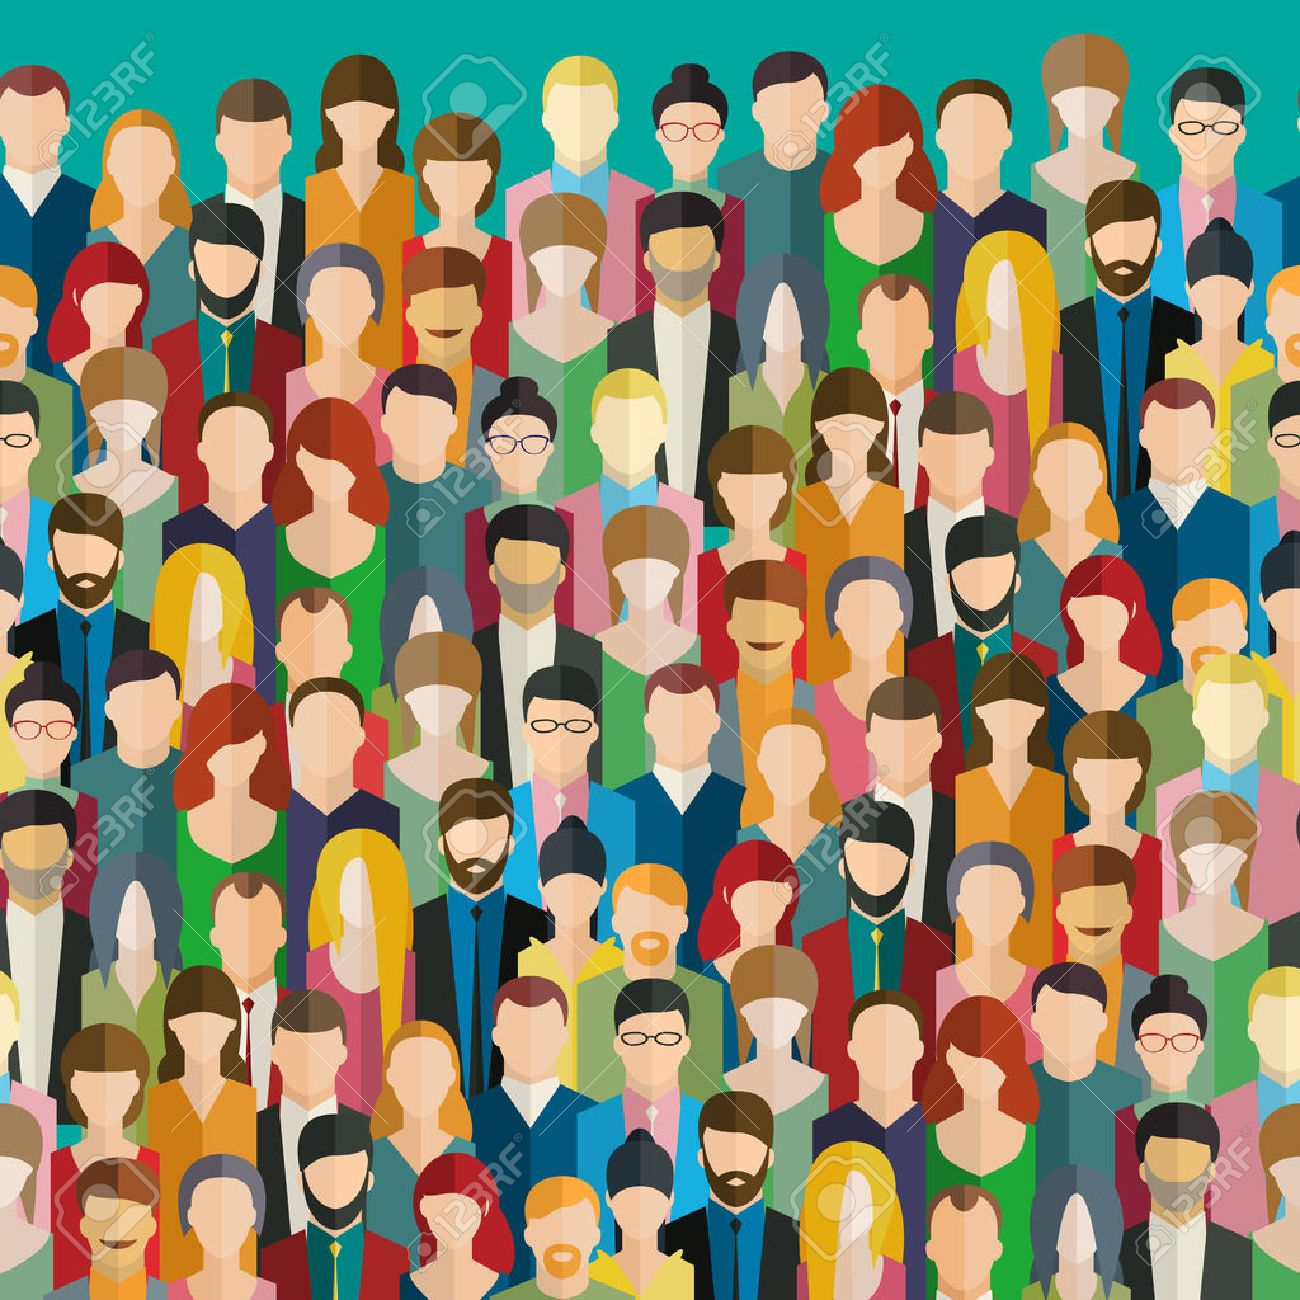 The crowd of abstract people. Flat design, vector illustration. - 53982937